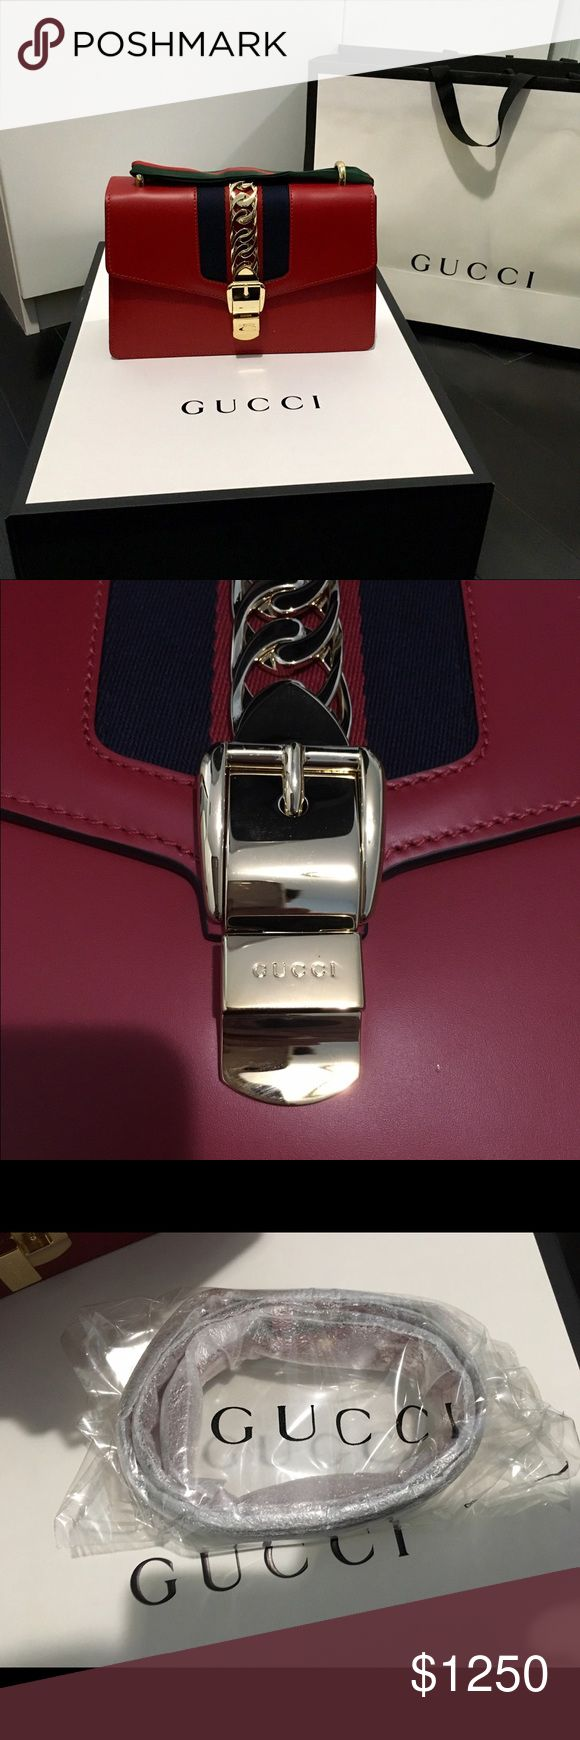 """GUCCI sylvie small size bags. New 99%. Used several times. No damaged or scratchs. Small size. 10""""W Gucci Bags Shoulder Bags"""